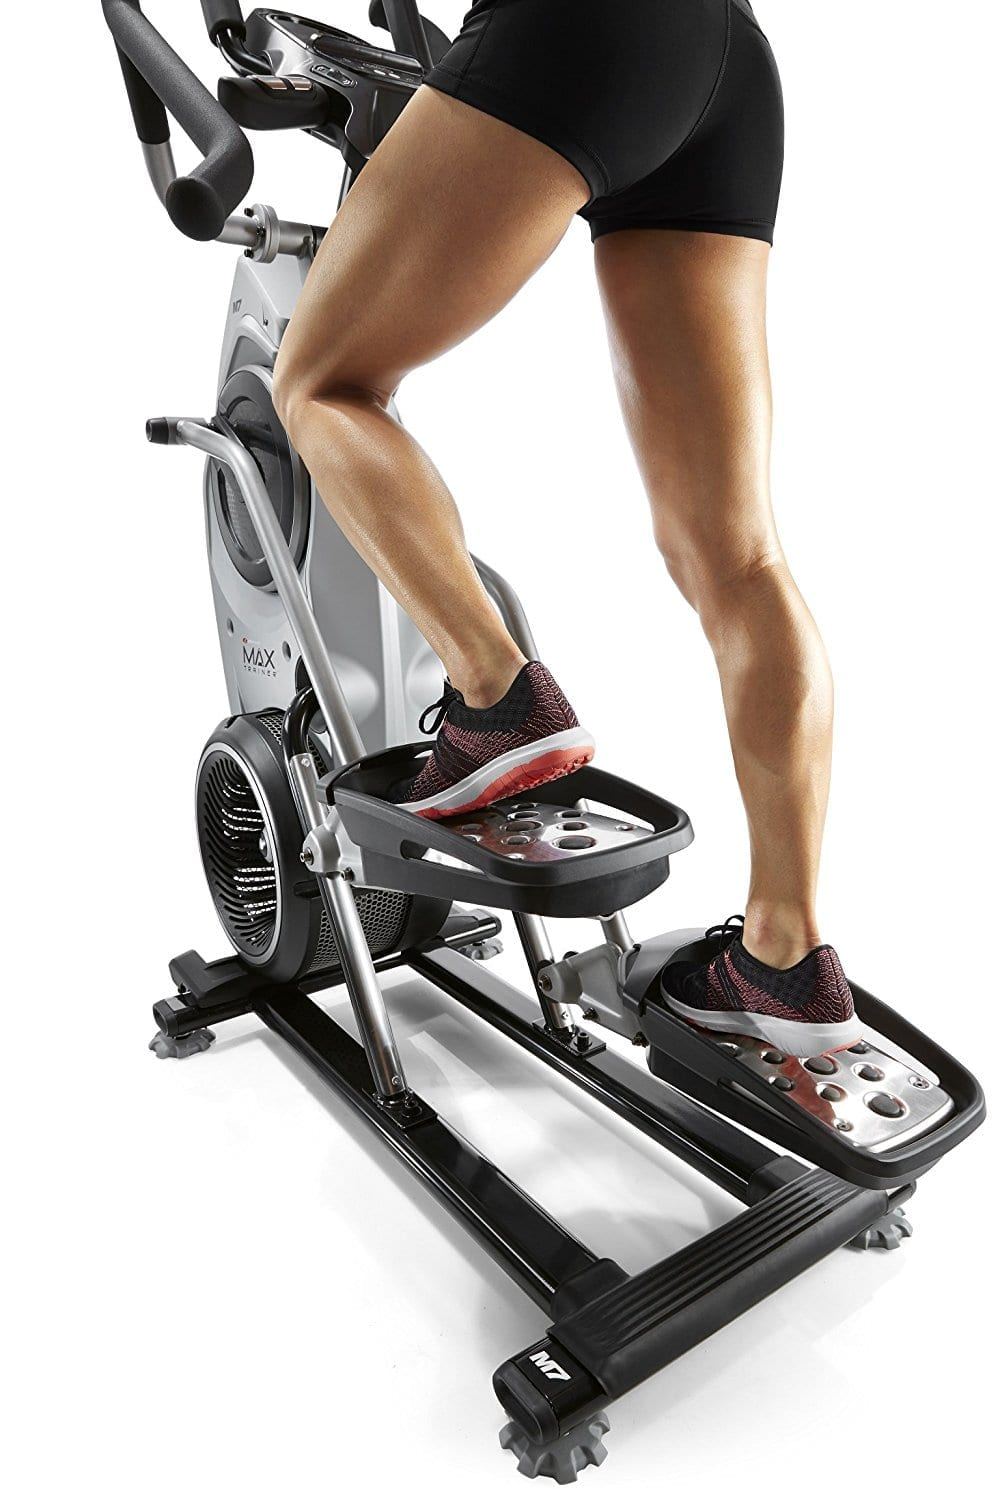 Try Bowflex Max >> Bowflex Max Trainer M7 Review Plus M3 M5 Comparison